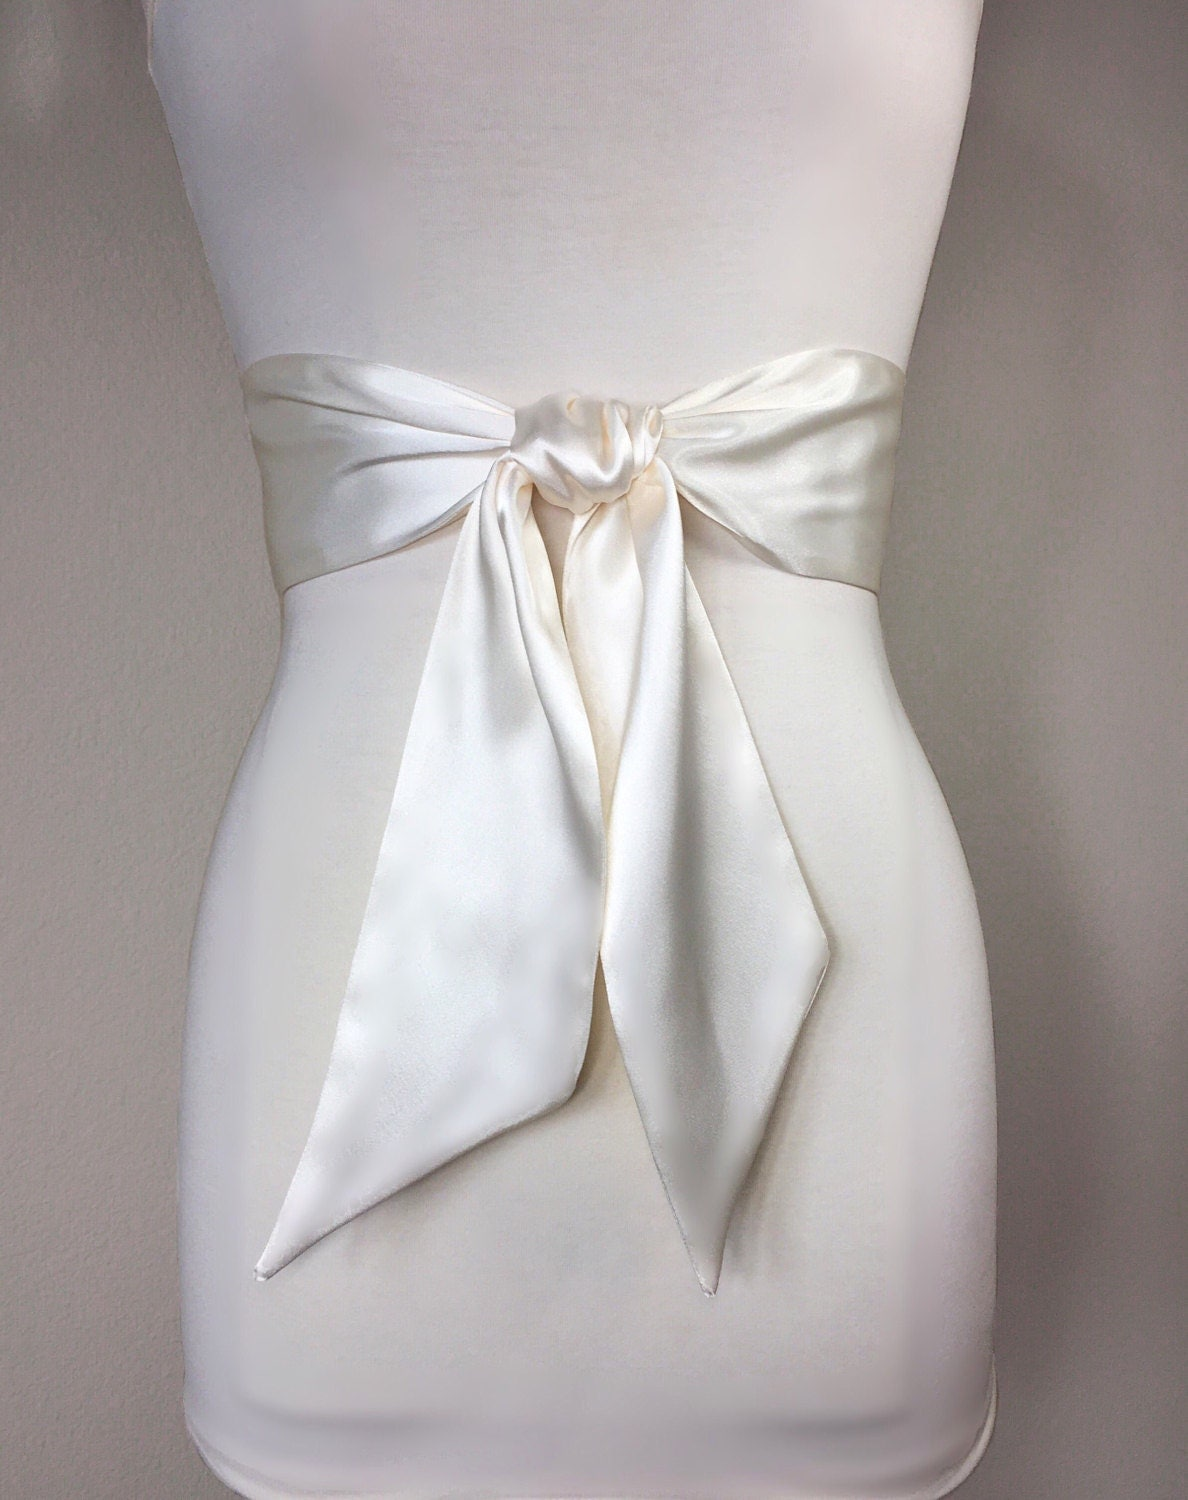 Ivory satin sash ivory sash belt wide ivory wedding dress for Ivory wedding dress sash